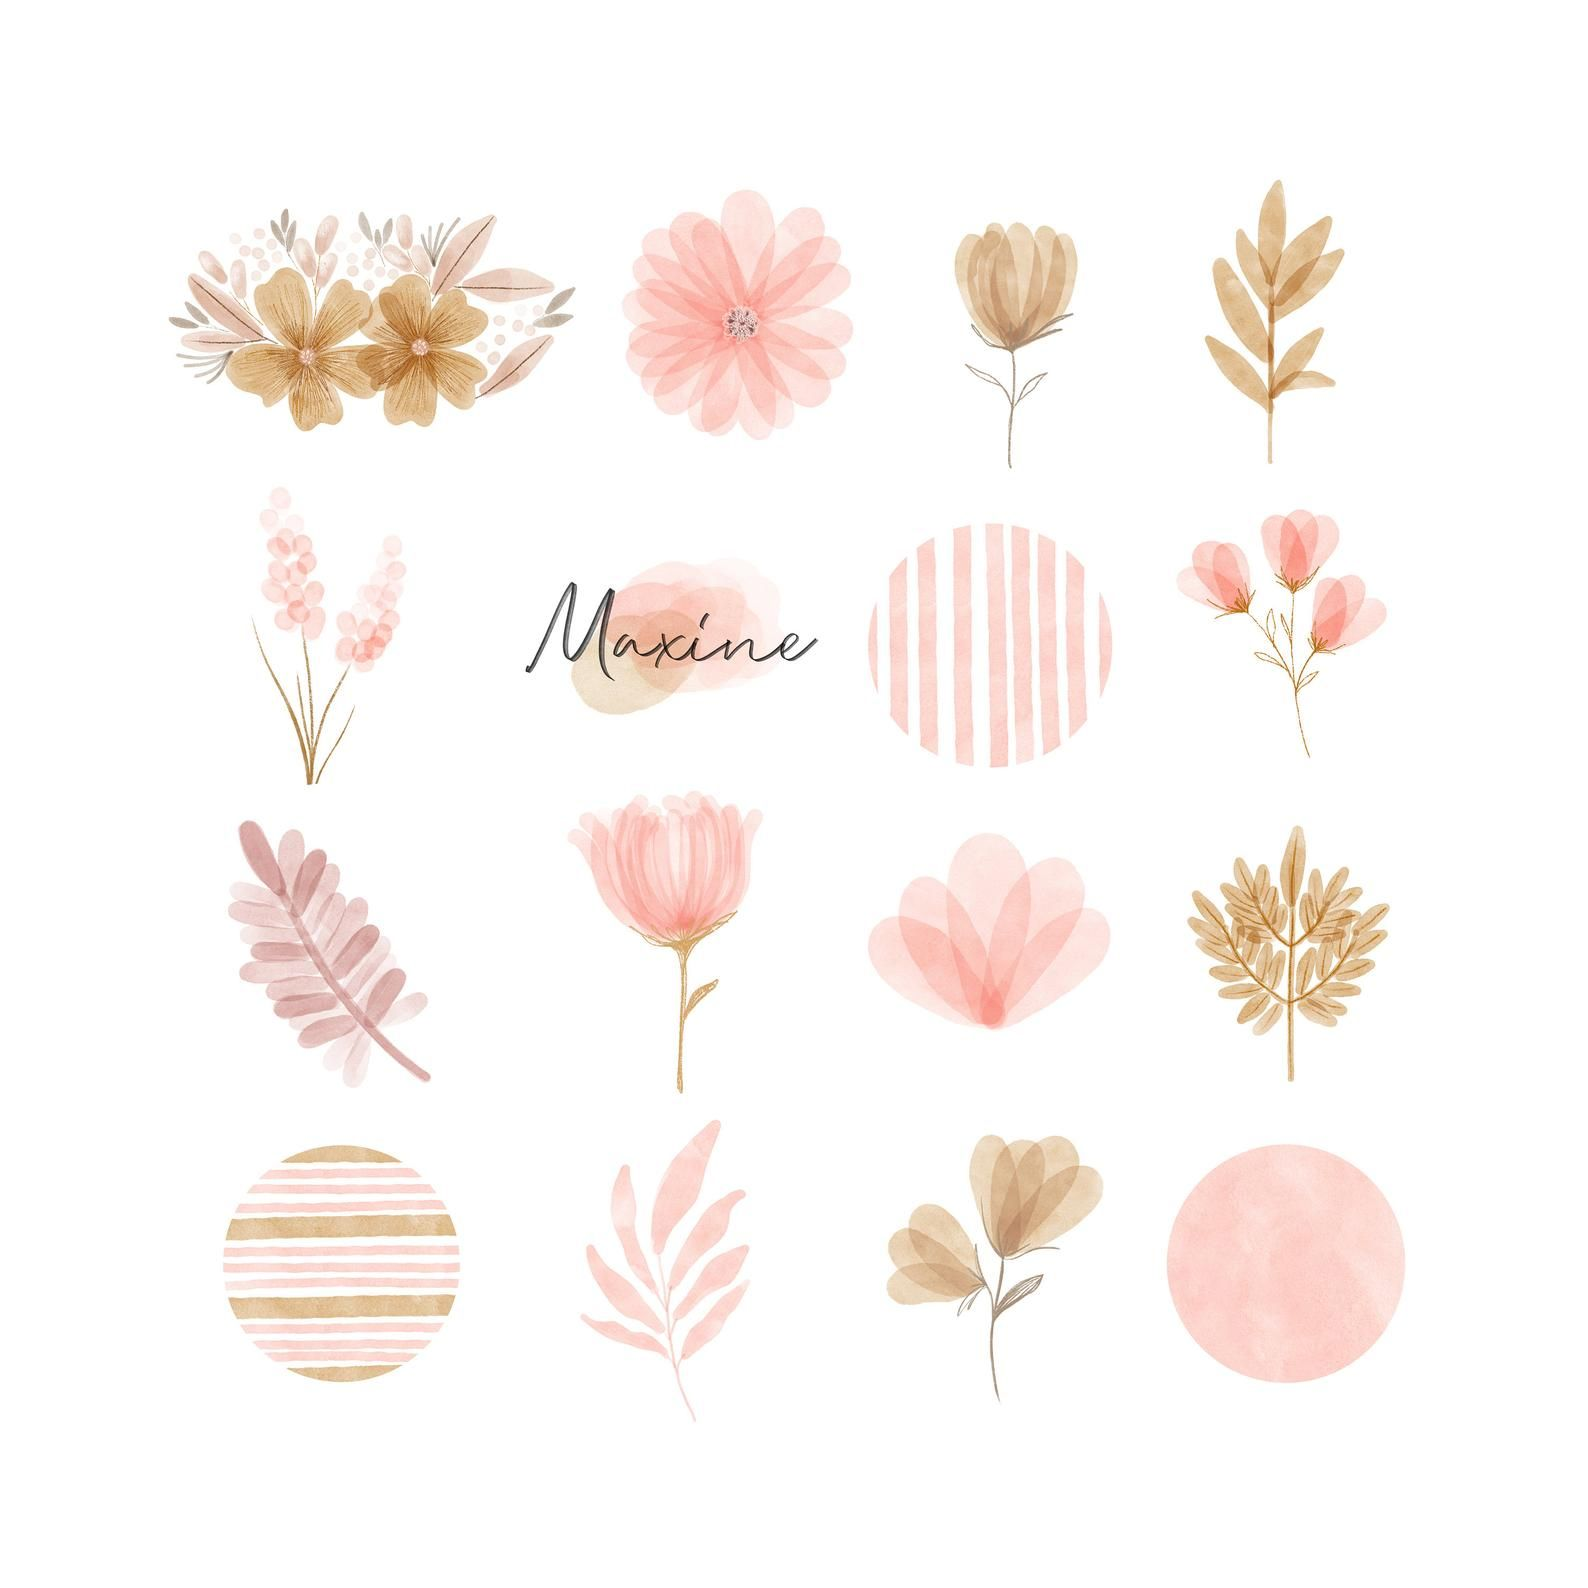 64 instagram story highlight icons bundle - iPhone iOS 14 app icons pack neutral - the watercolor hand painted boho feminine florals